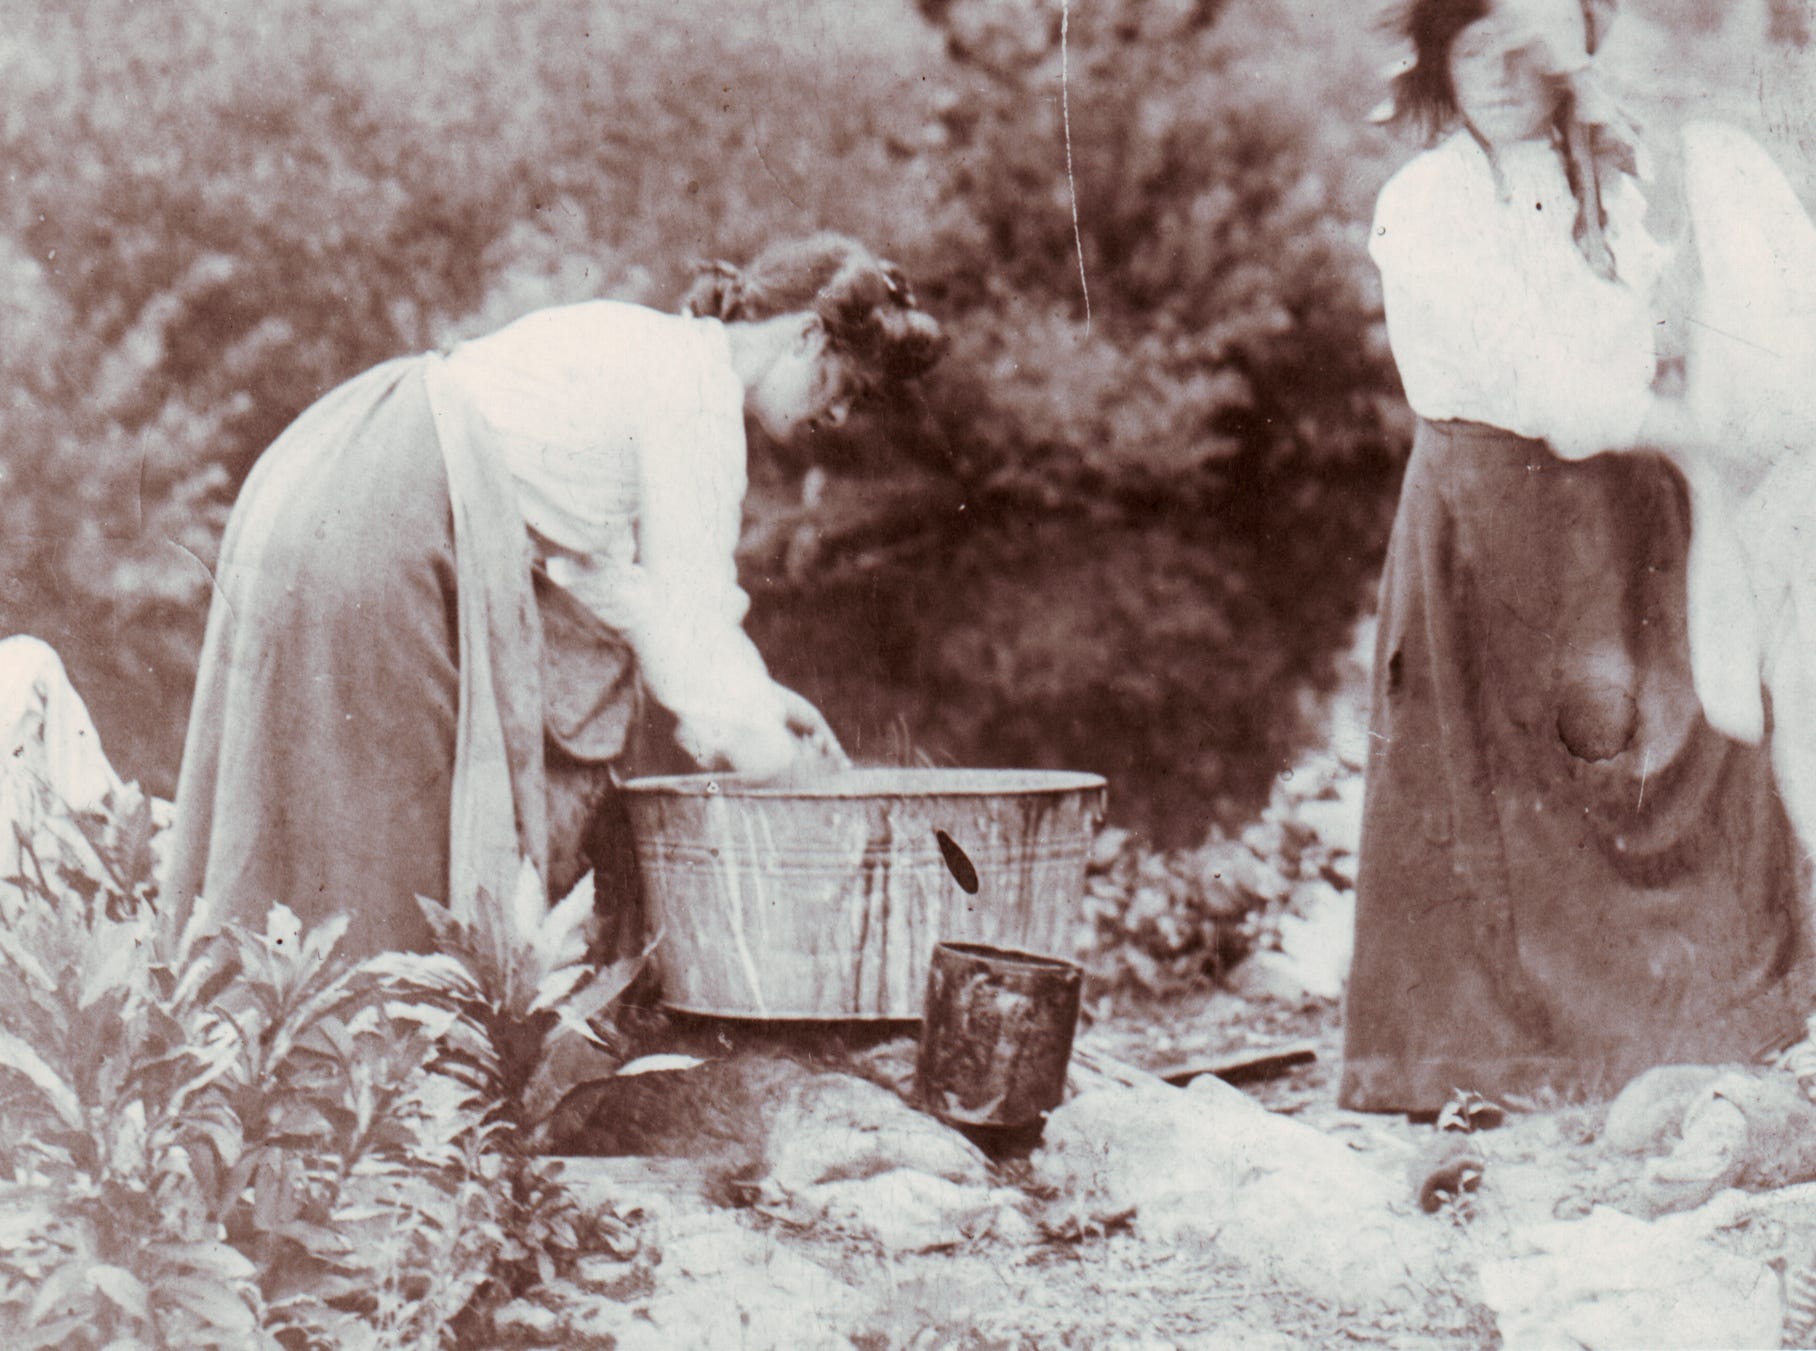 Kate Shields and Harriette Moody washing clothes on on washday in Cades Cove, circa 1915.